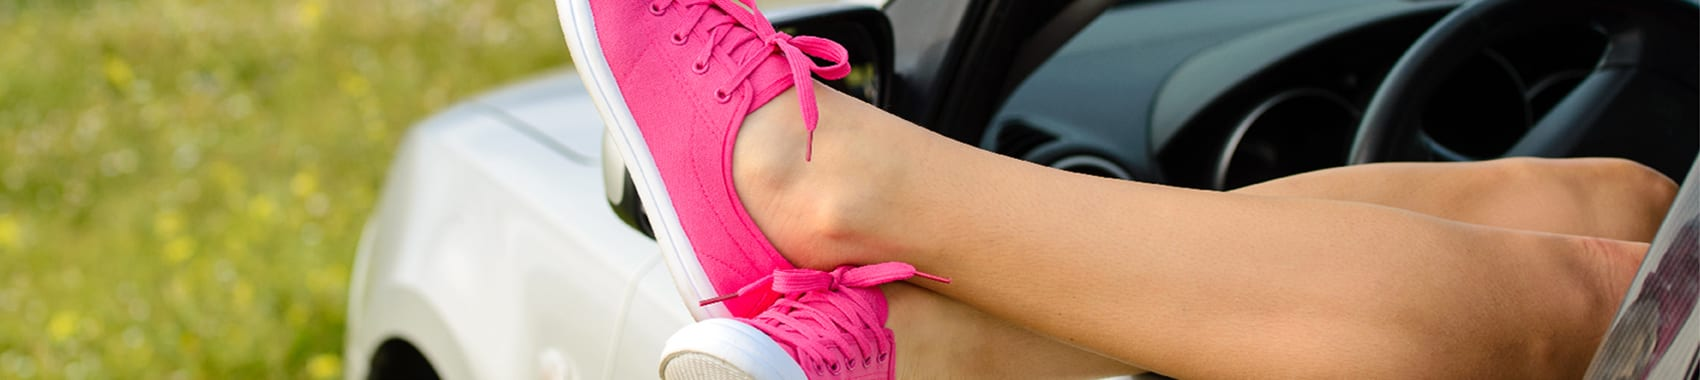 Women that Read About Shoes are into Ford Cars, and other Surprising Content Bedfellows